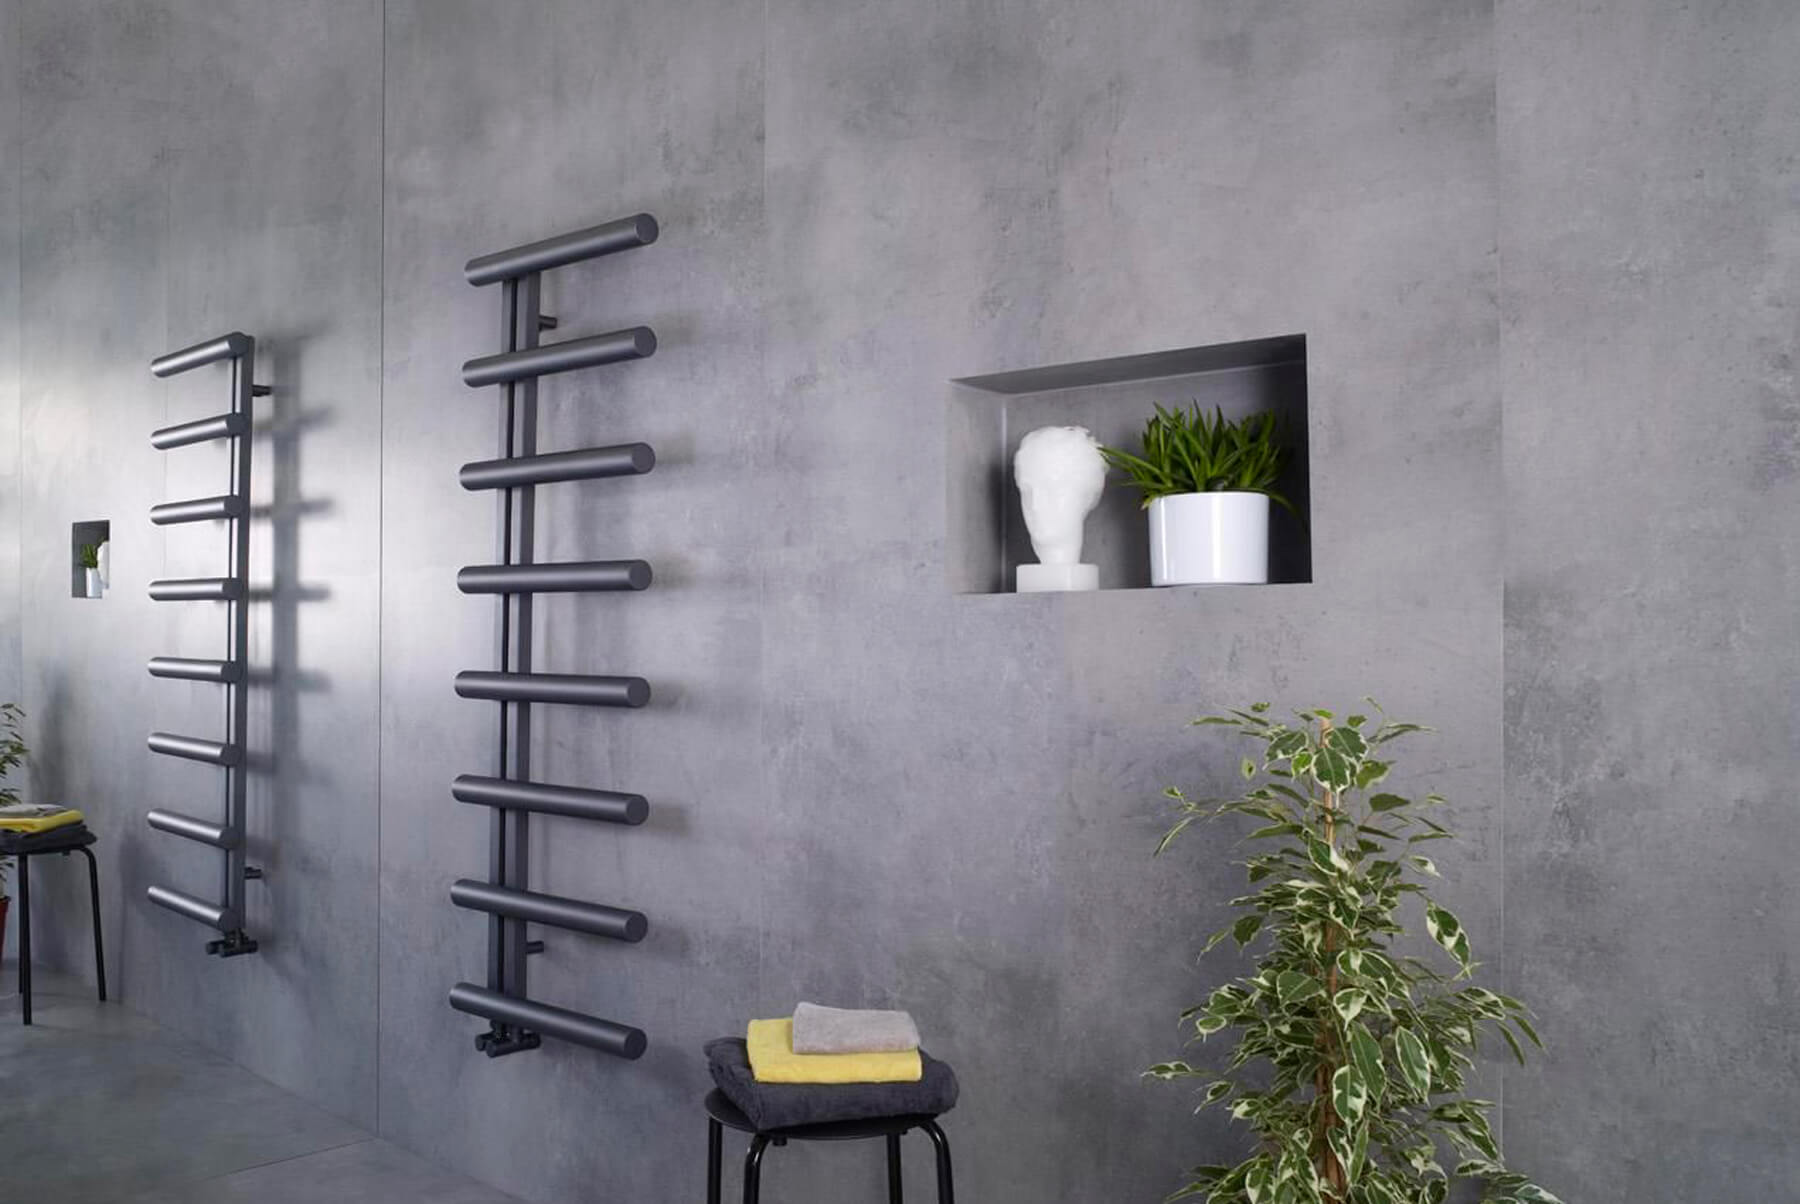 Radiators-&-Towel-Warmers-Bisque-Chime-Inset-3-1800x1204